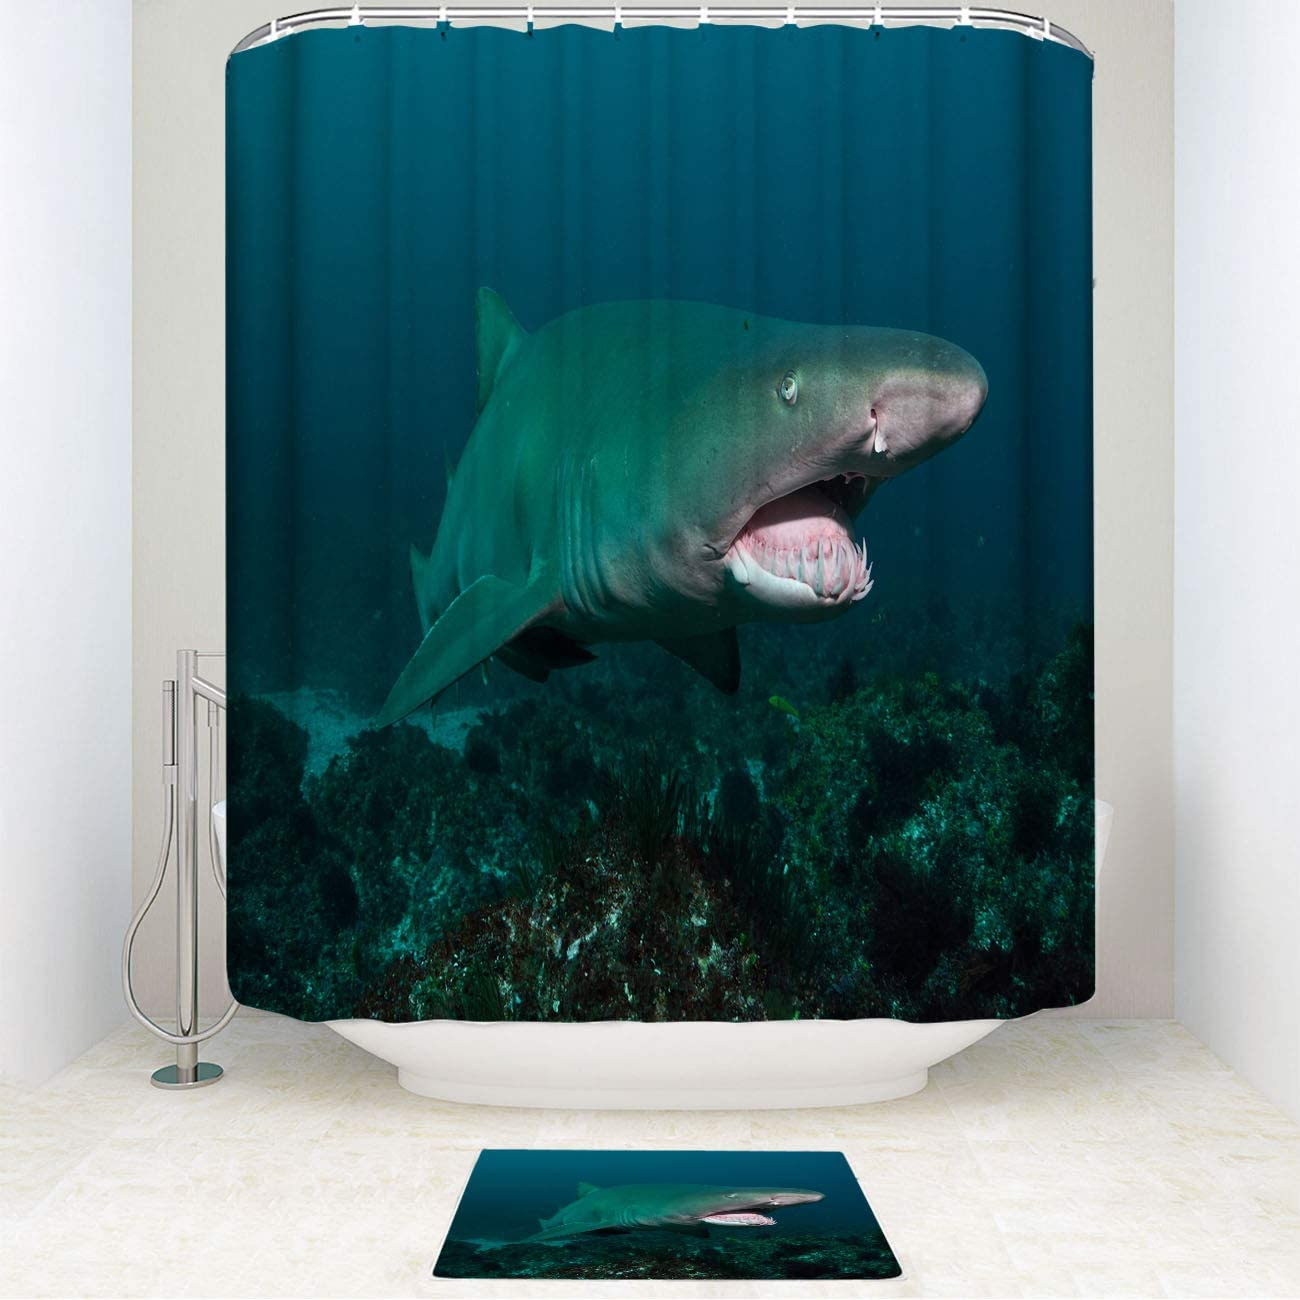 Monstero Grey Shark Shower Curtain Set with Non-Slip Bath Mat Grey Nurse Shark,Tweed Heads,New South Wales,Curtain Decor Sets with Hooks for Bathroom Showers and Bathtubs 72 X 72